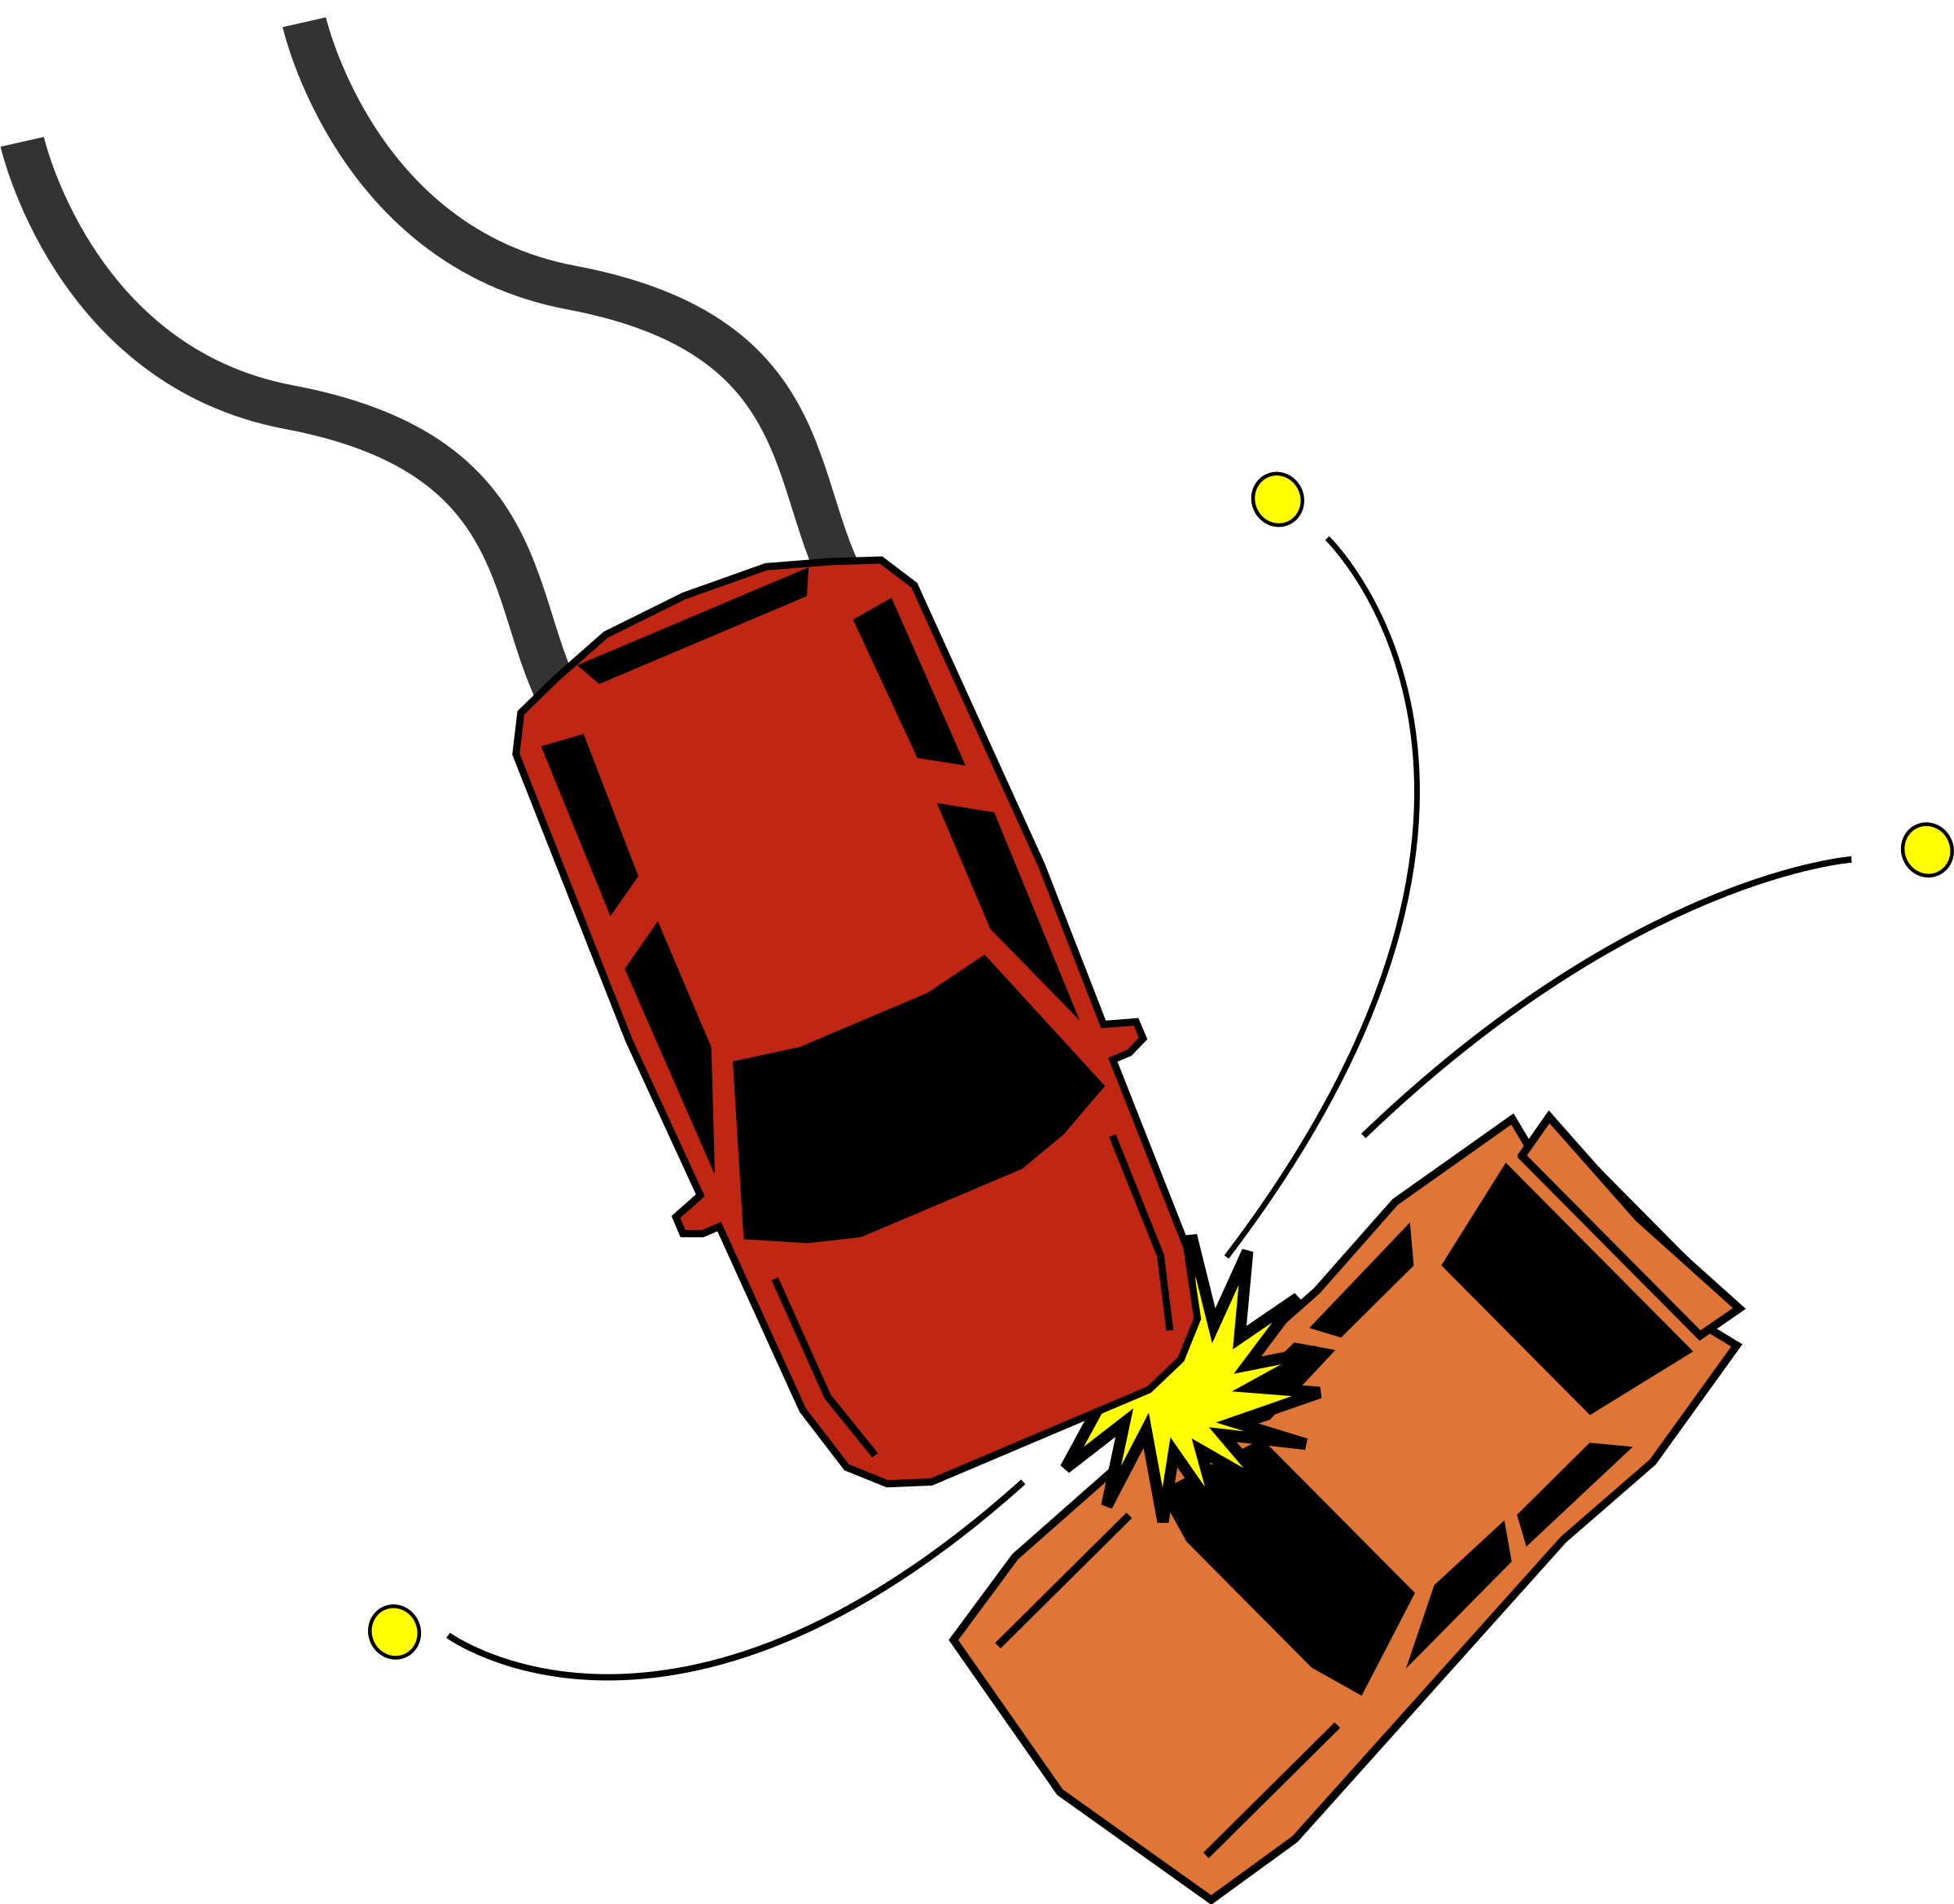 Car Accident. Car Accident. Crash Clip Art - Blogsbeta